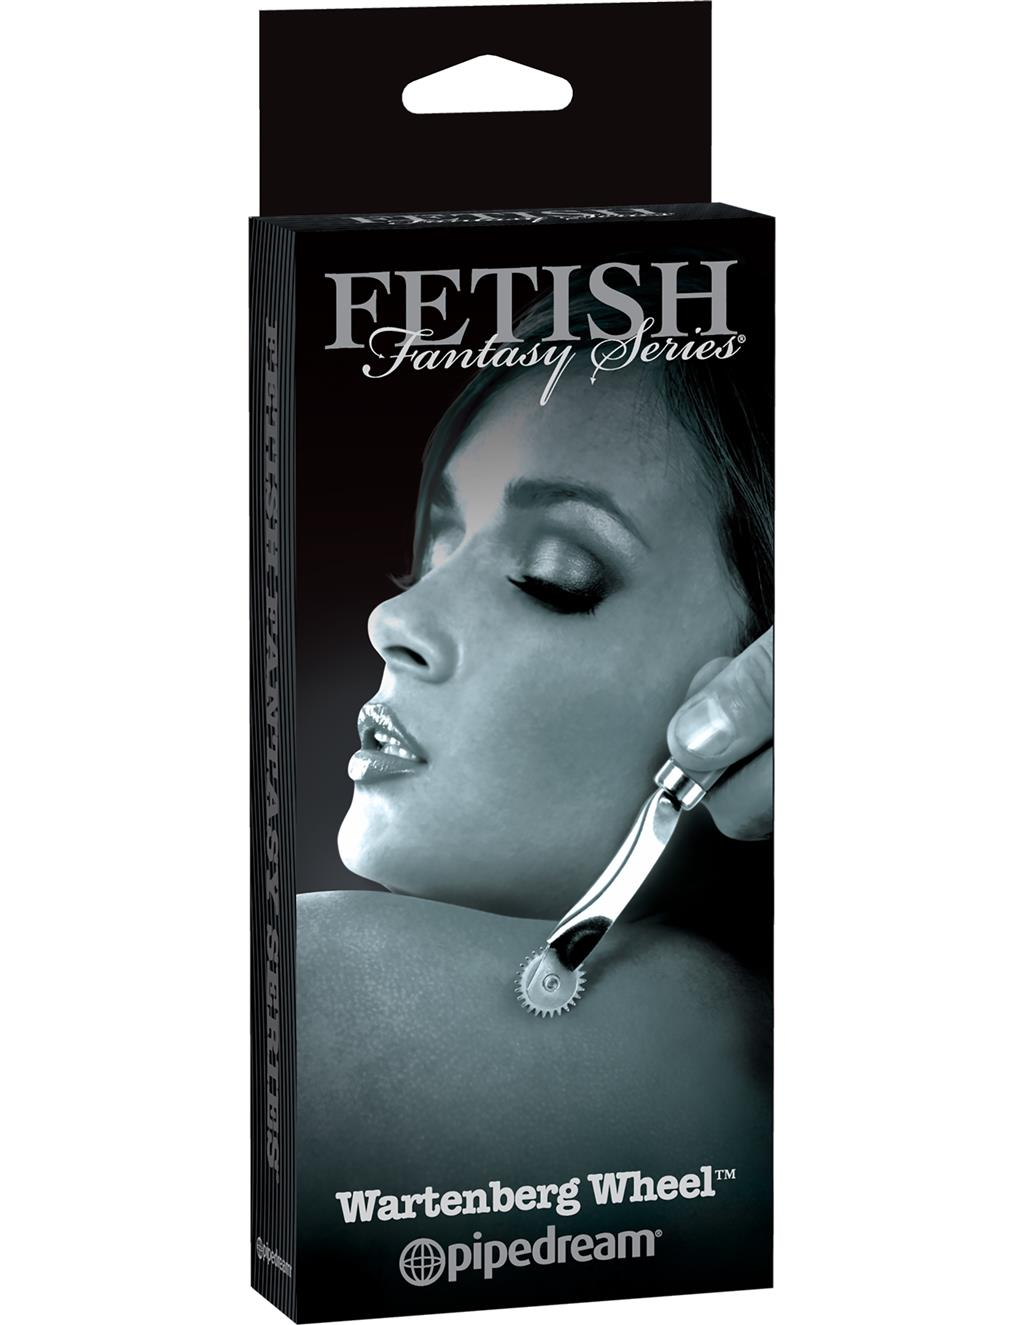 Ручной стимулятор Fetish Fantasy Series Limited Edition Wartenberg Wheel